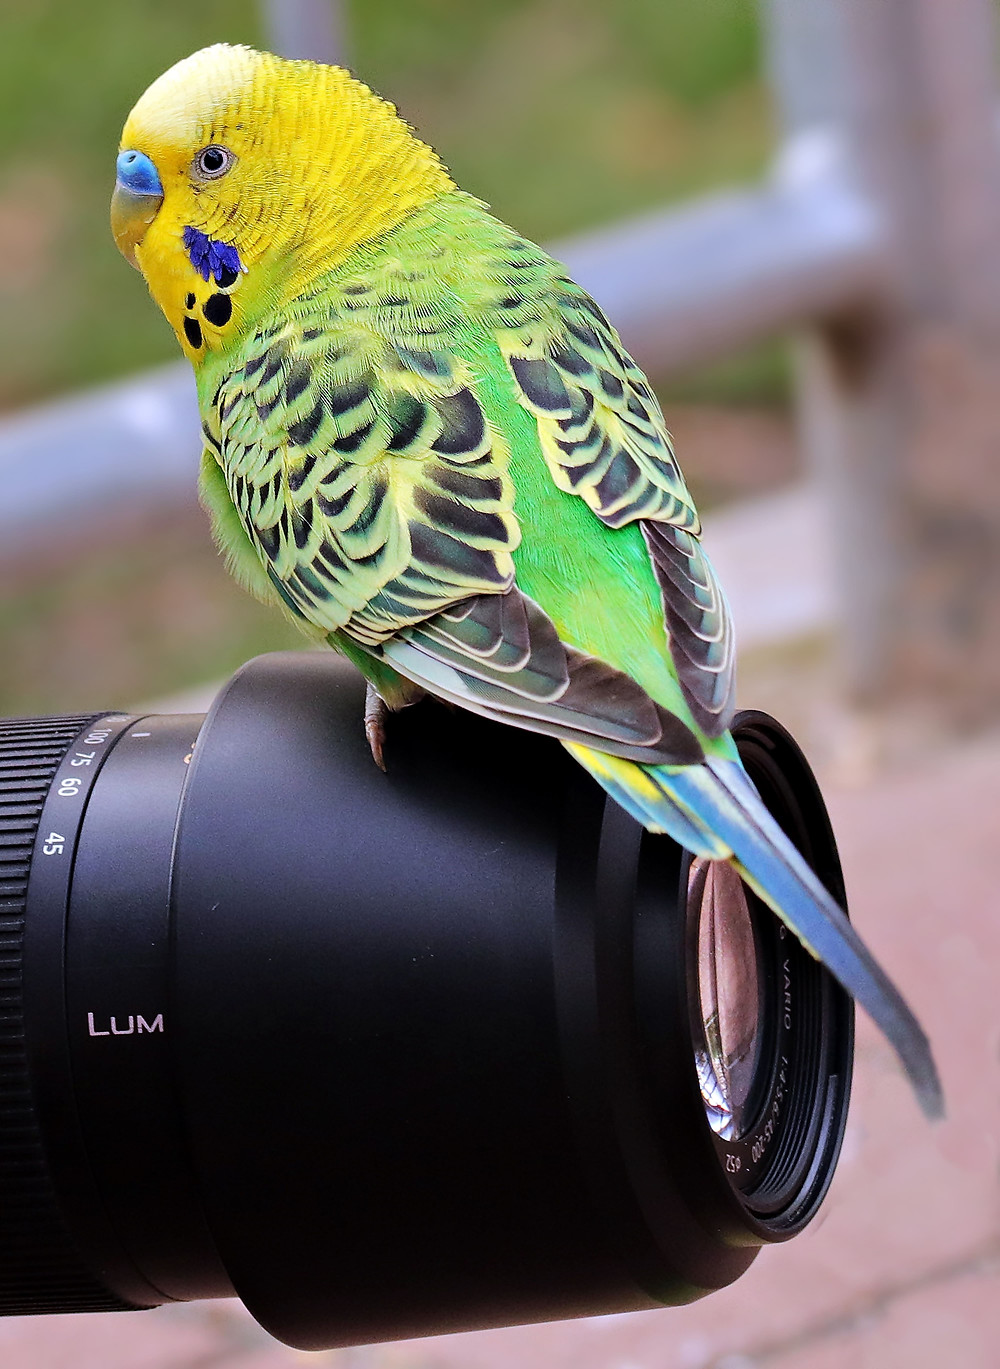 A yellow and green budgie perched on a camera lens